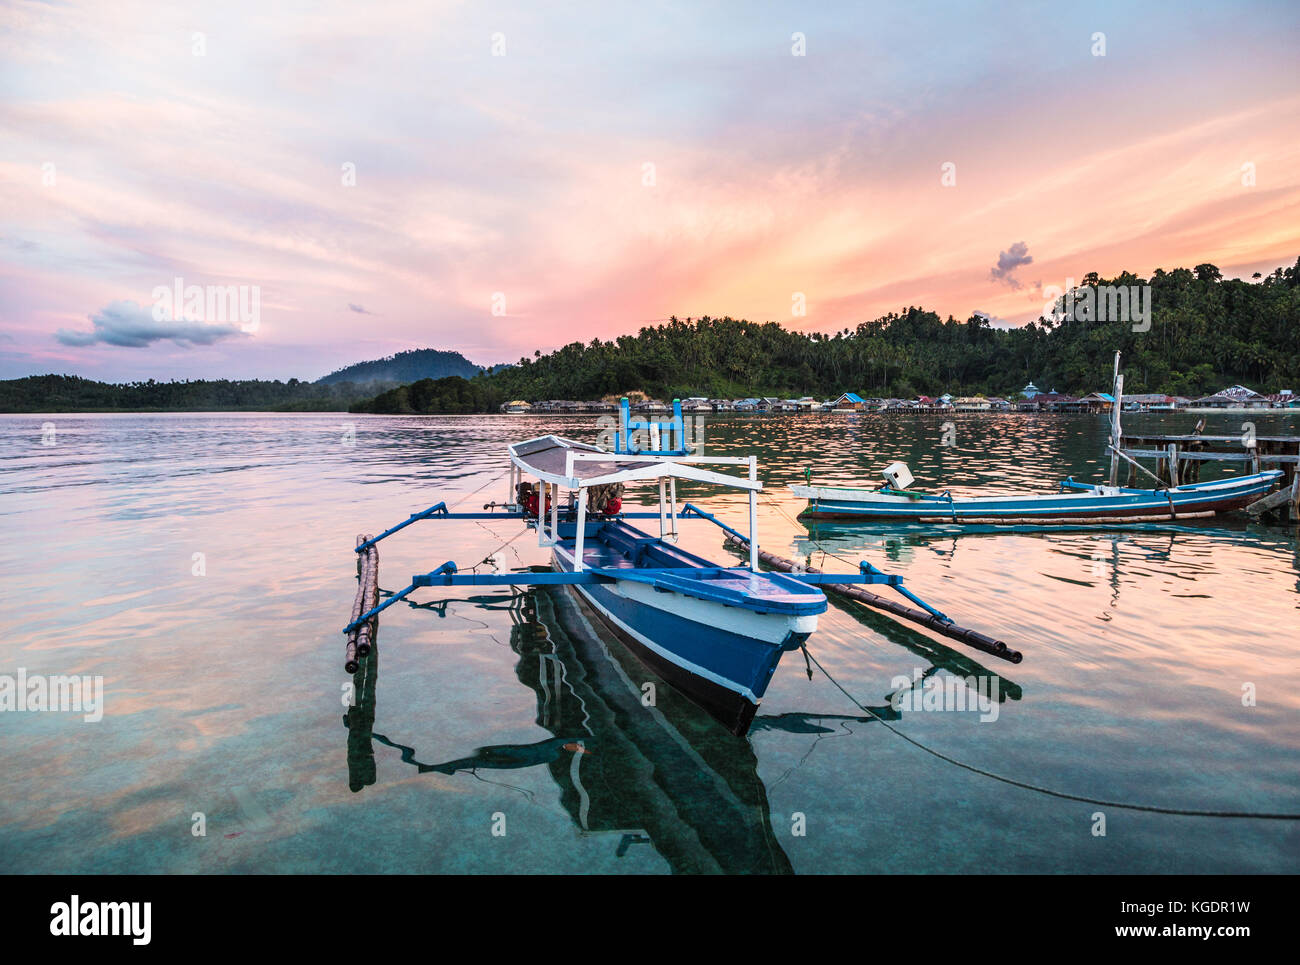 Stunning sunset over a traditional boat in Katupat in the Togian (or Togean) islands in Sulawesi, a remote corner - Stock Image